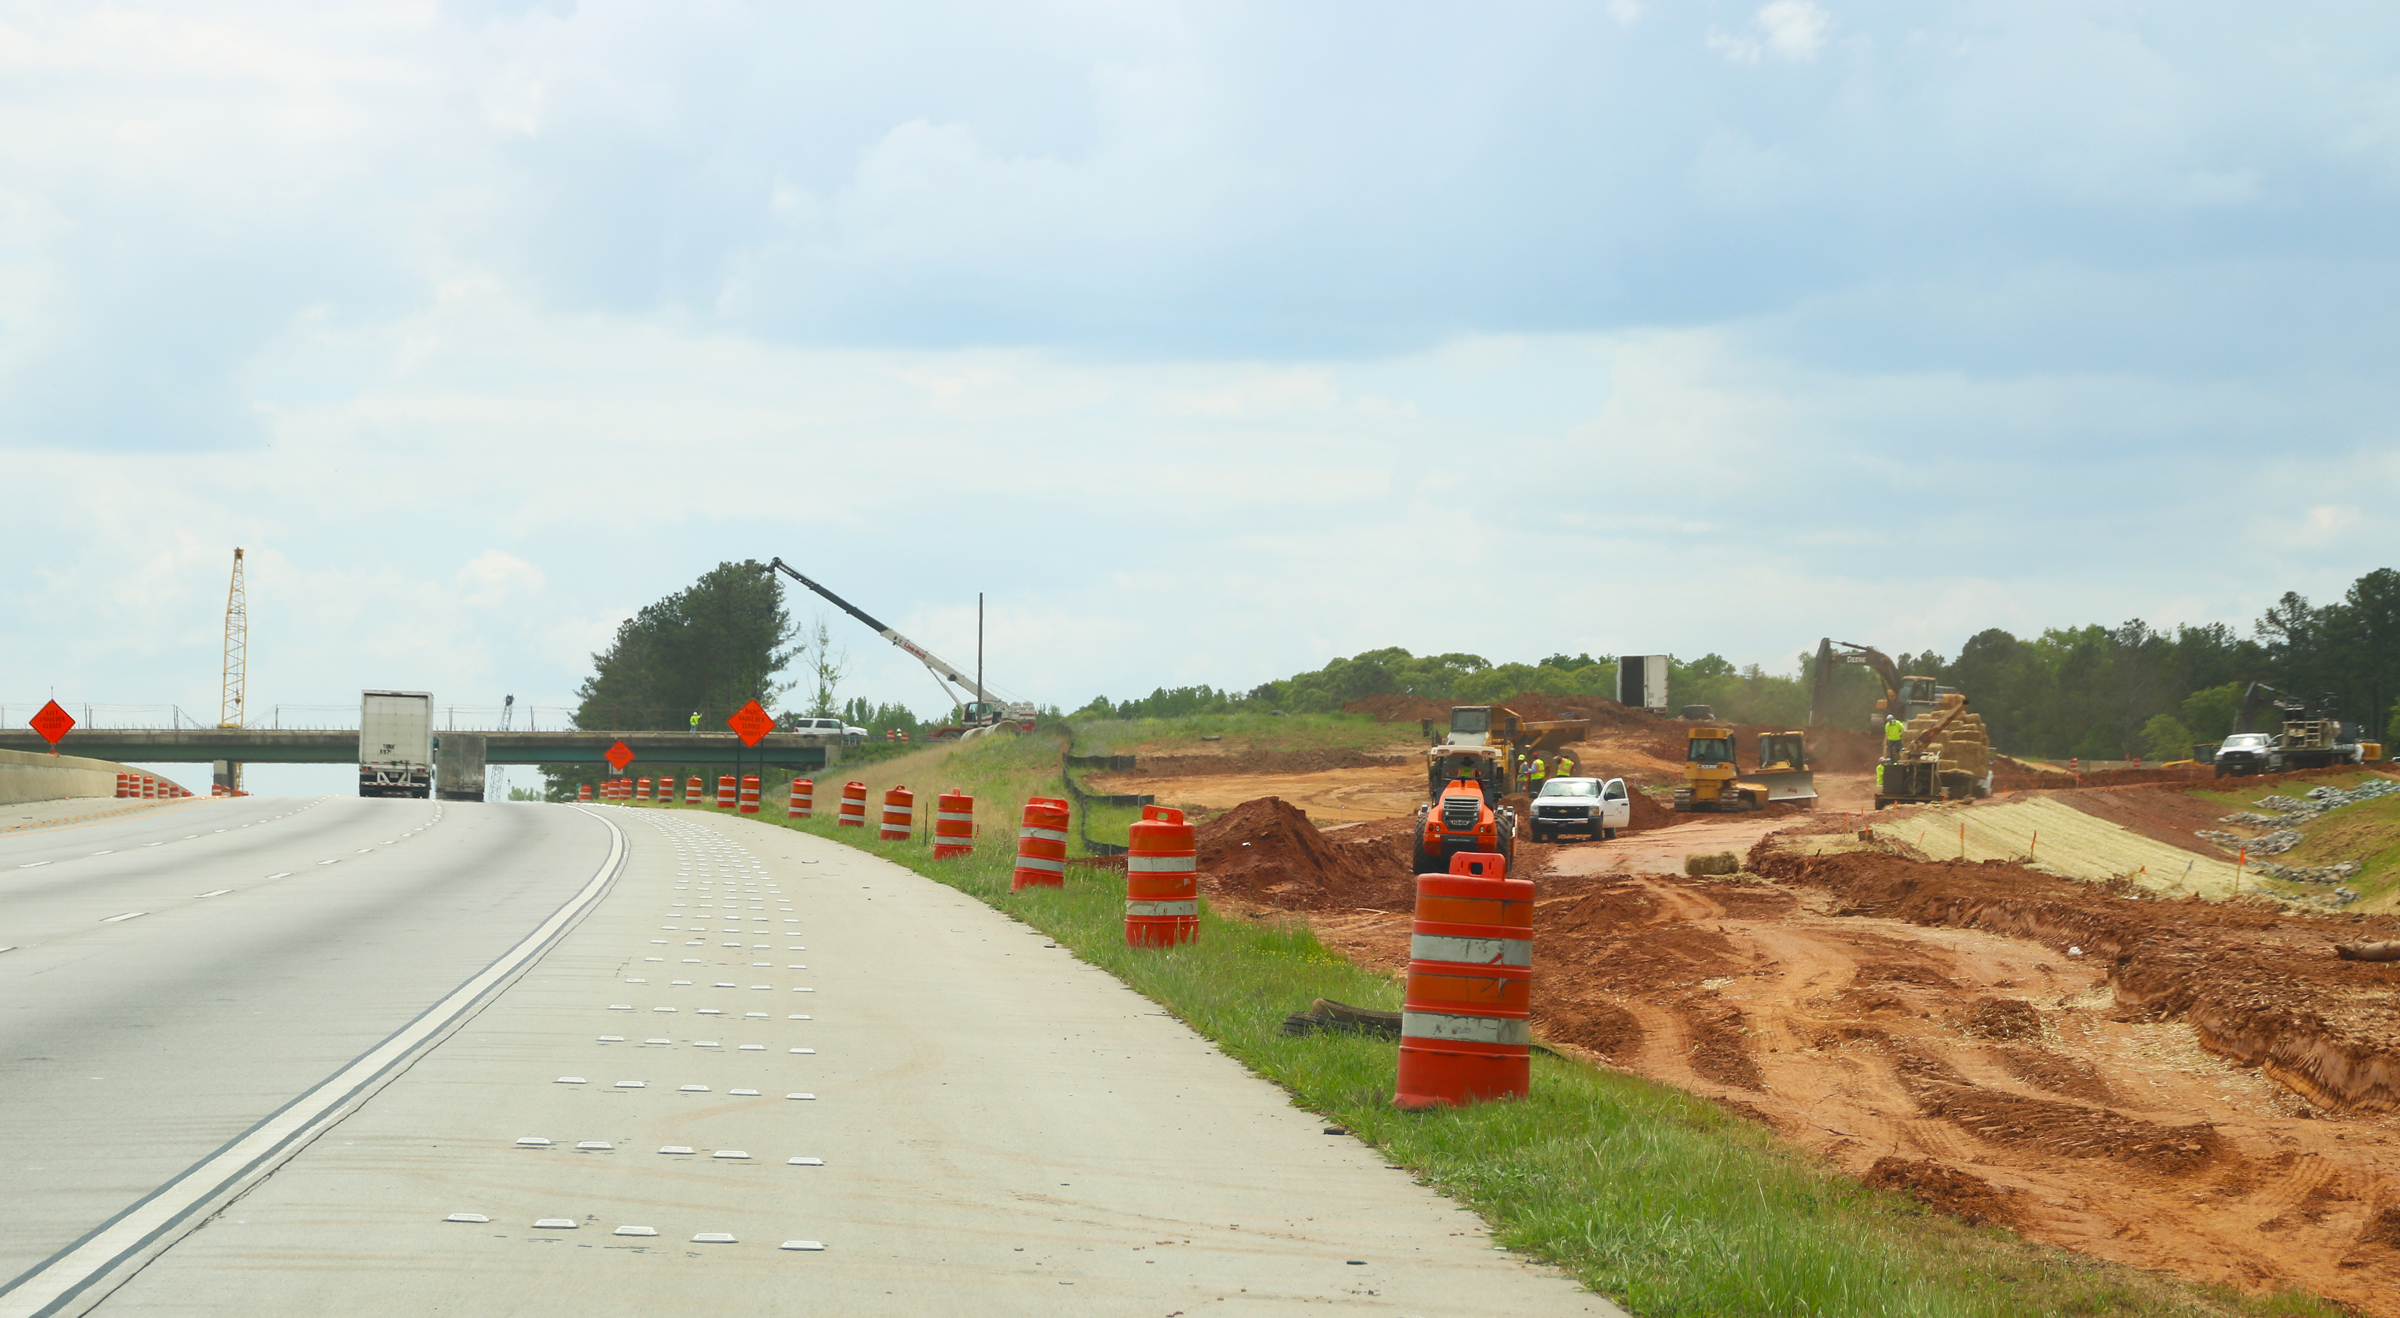 View of Poplar Road interchange from the south